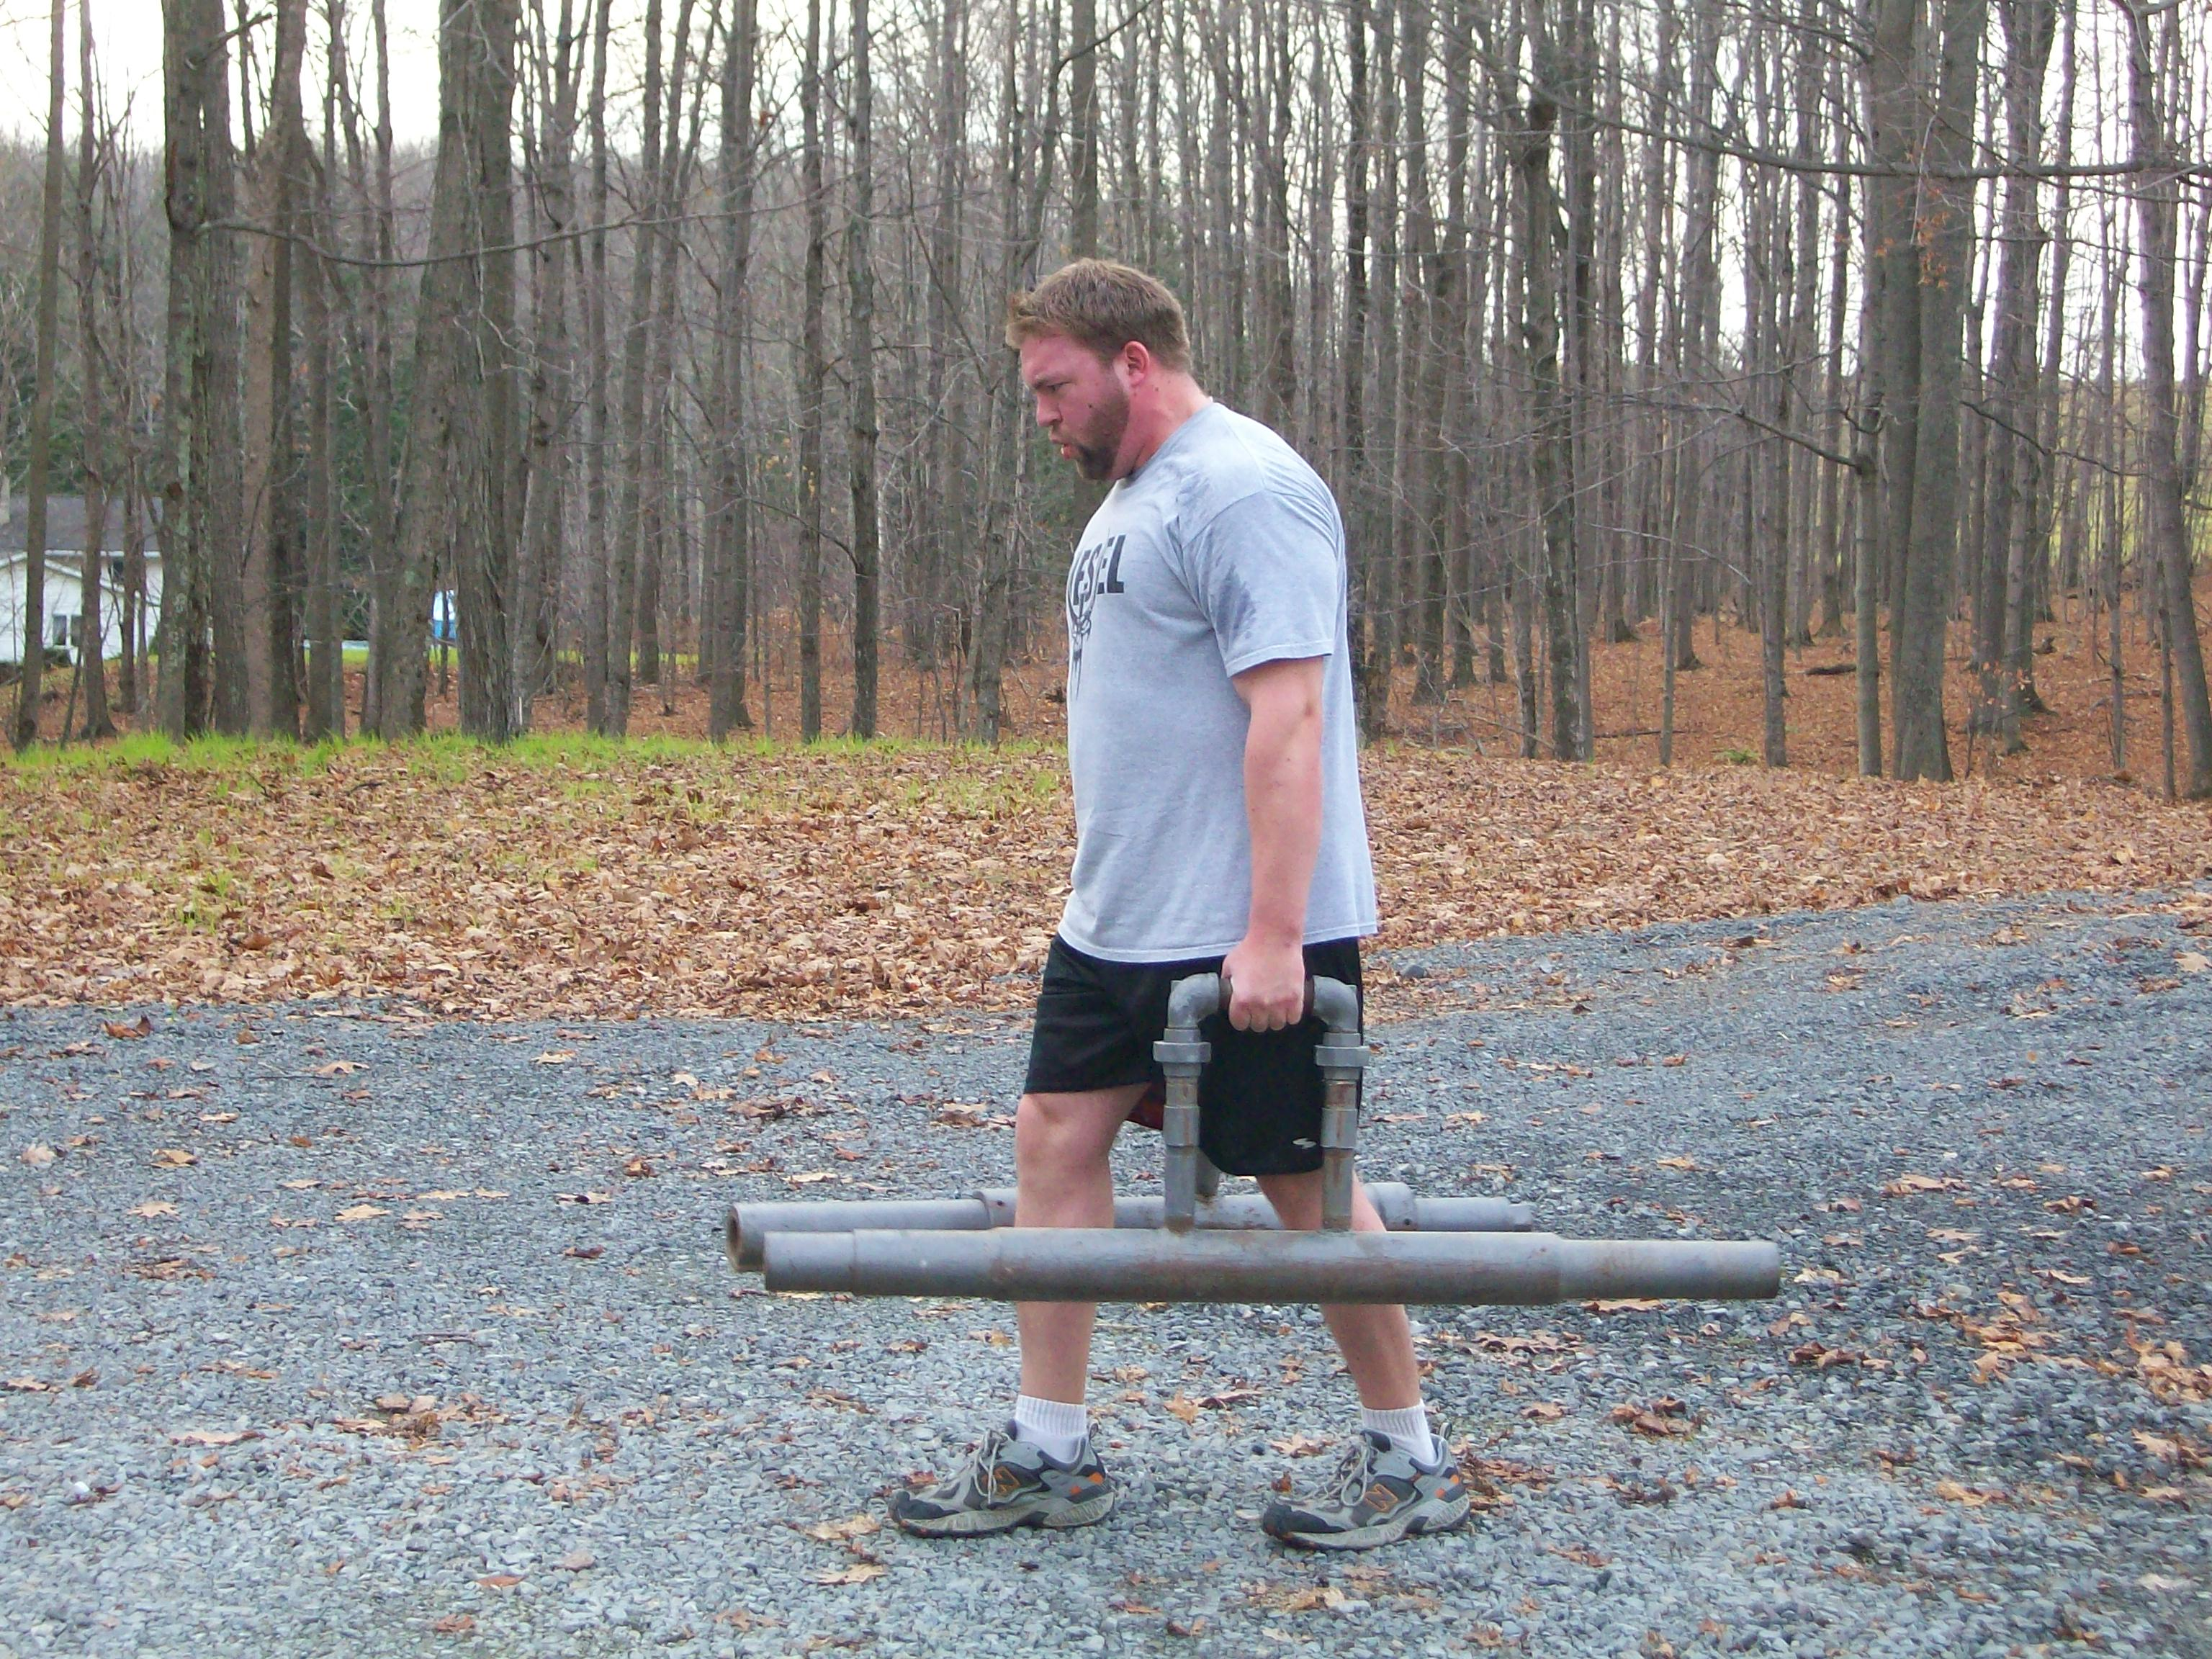 farmers implement homemade strongman exercise routine